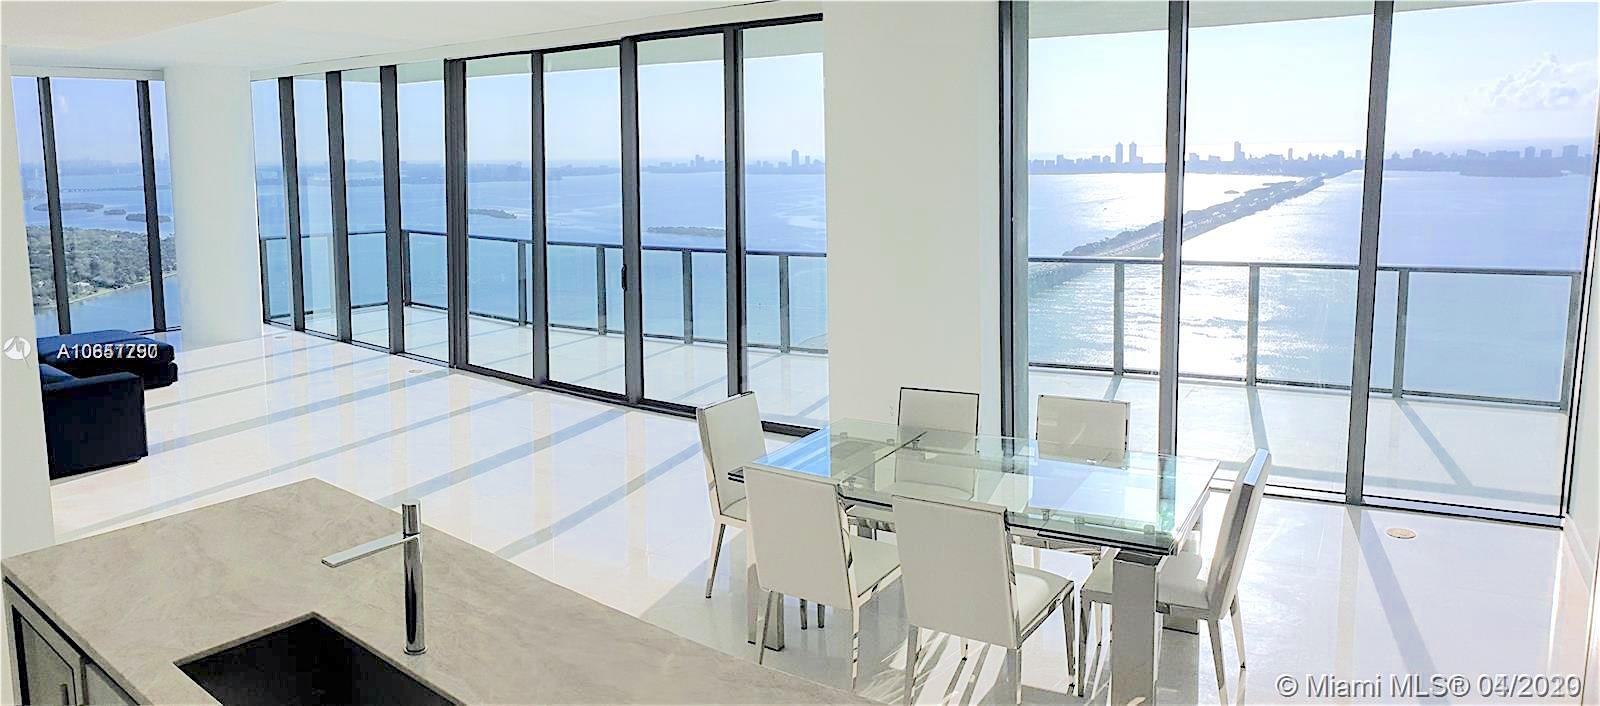 Details are everything. Amazing upgraded Penthouse with porcelain floor, top quality marbles, walk-i